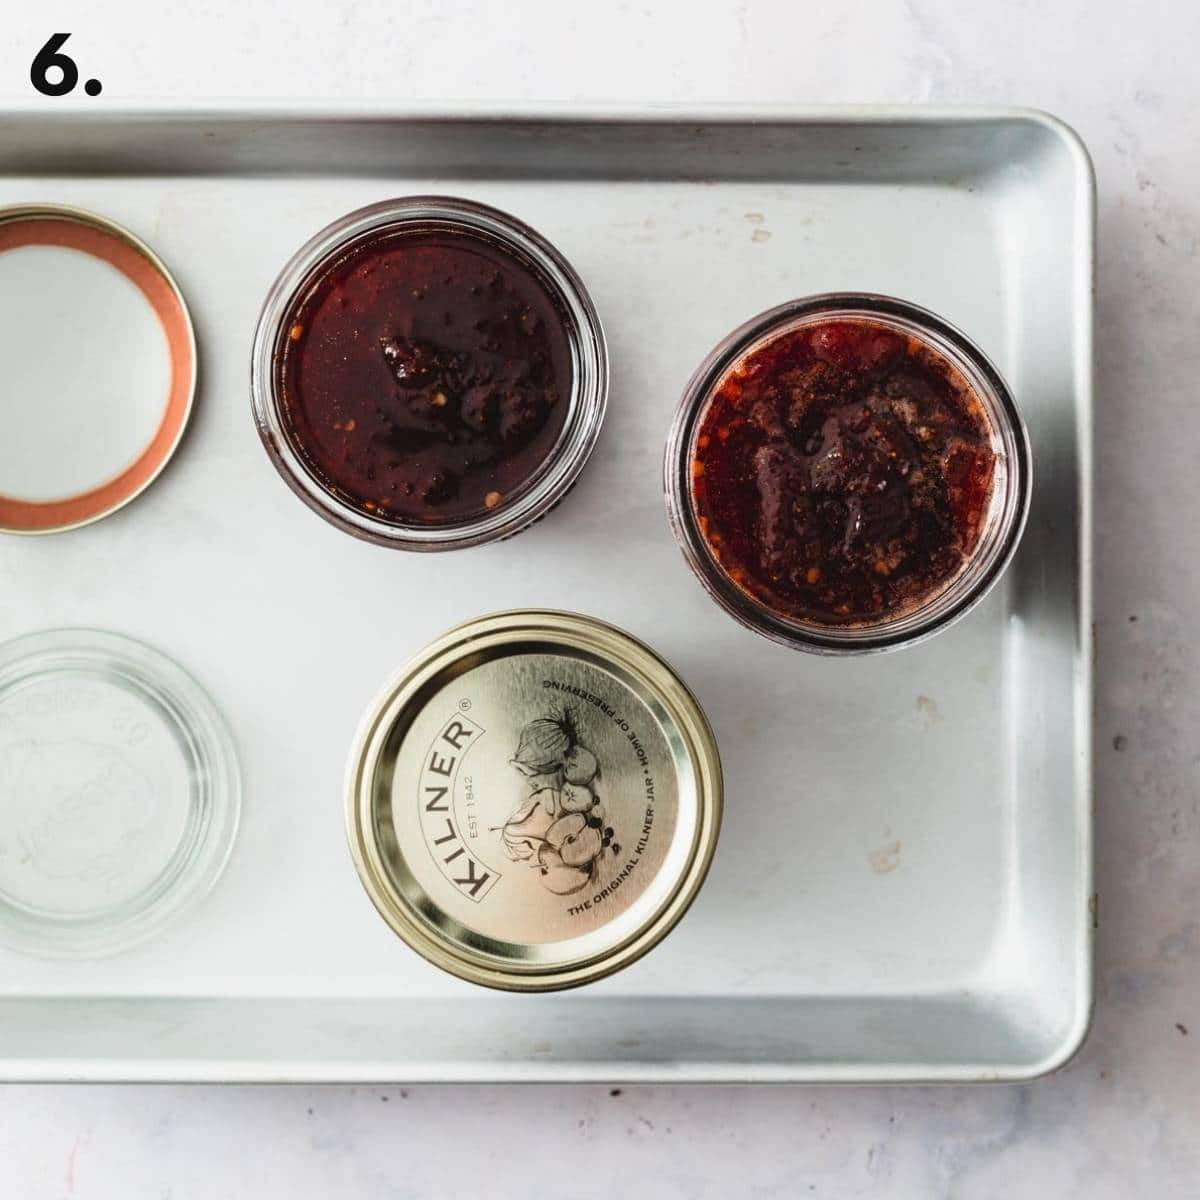 A tray with jars of jam laid out.